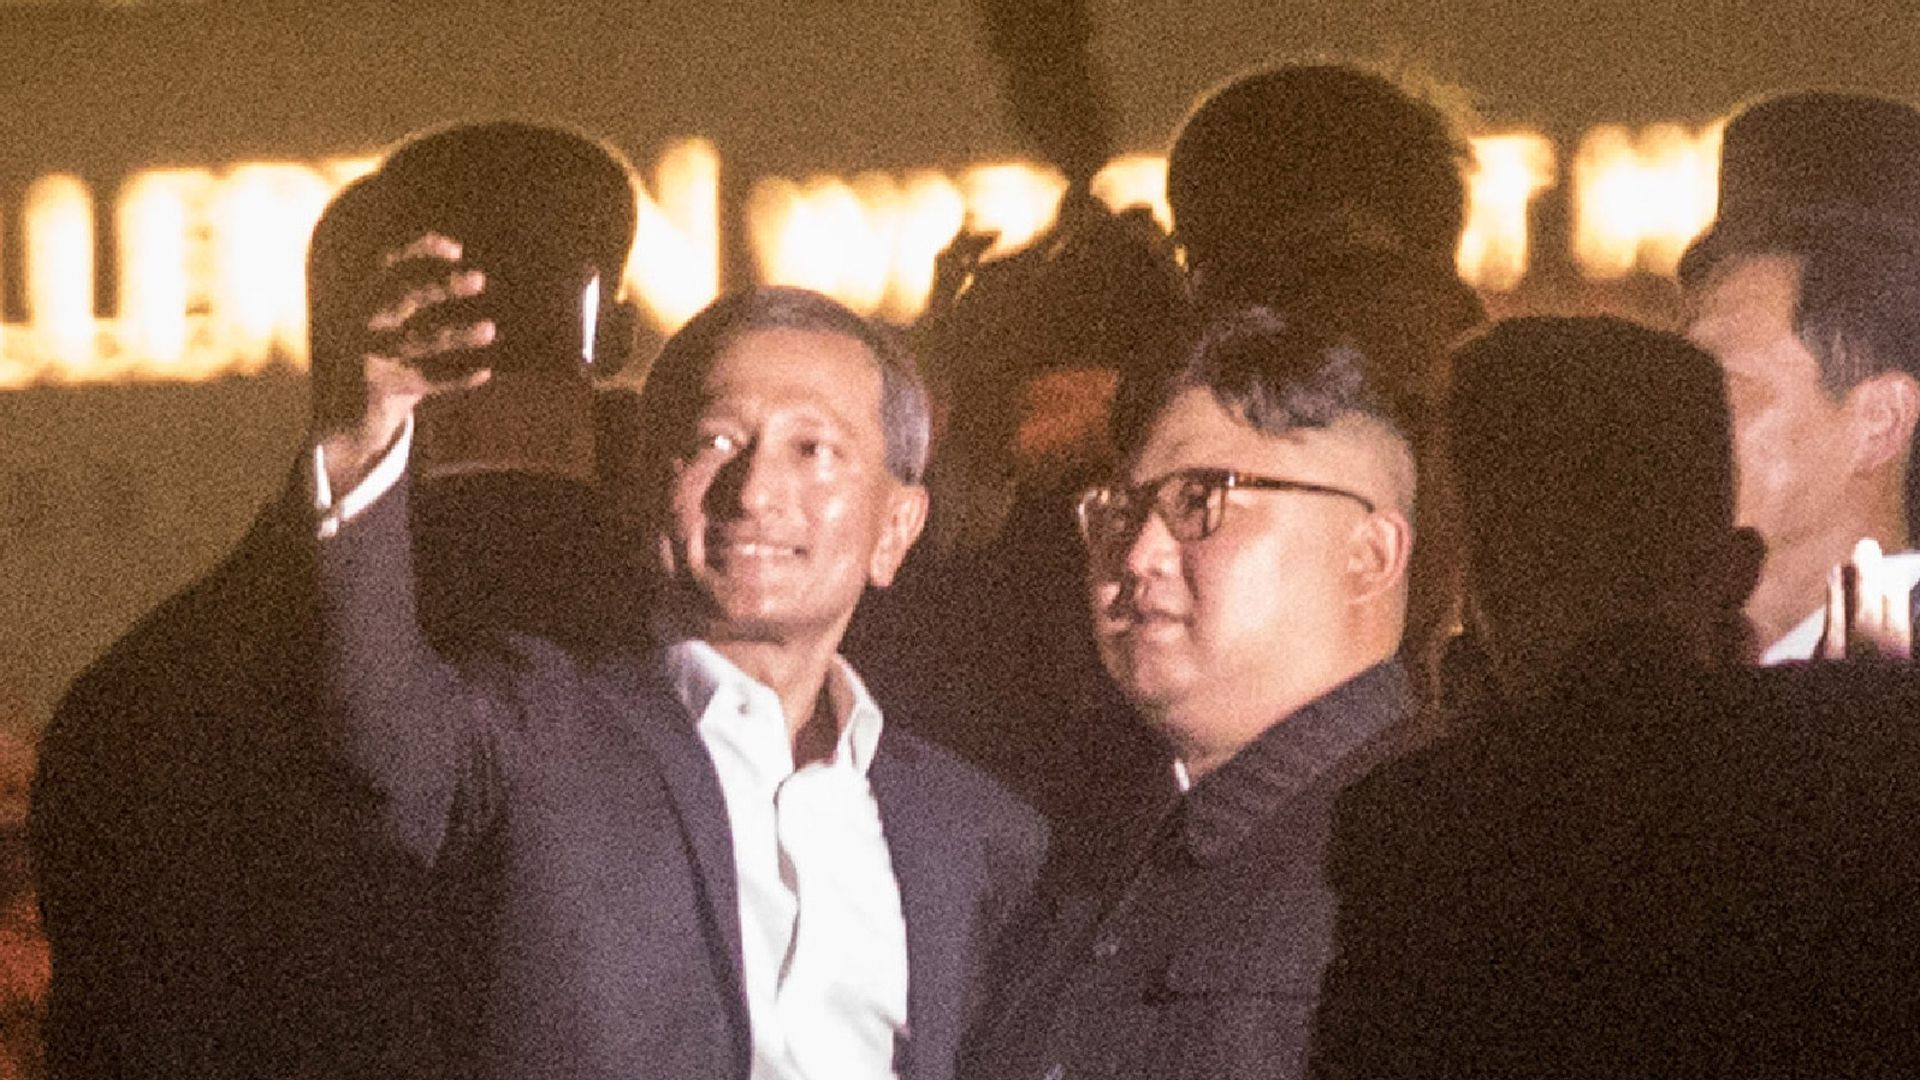 Kim Jong-un takes a selfie with the Singapore foreign affairs minister